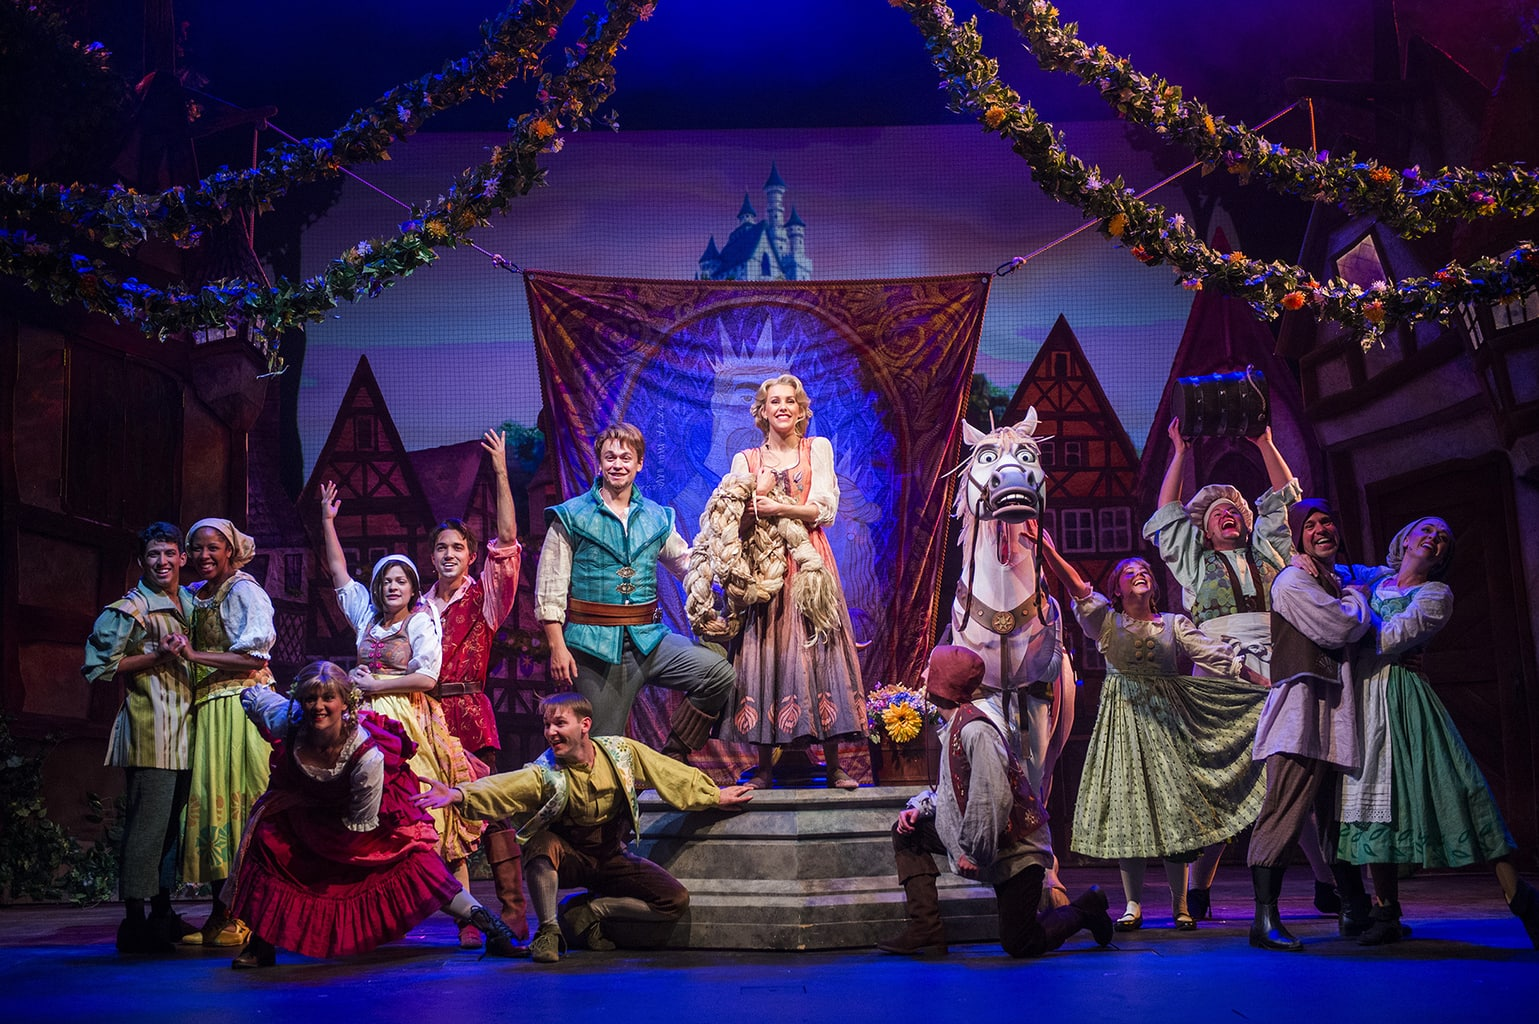 """""""Tangled: The Musical"""" is the newest original Disney Cruise Line stage spectacular. Presented exclusively aboard the Disney Magic, it combines a heartfelt story, an enchanting score and lavish production numbers to showcase the thrilling adventure of Rapunzel and Flynn Rider as they face ruffians, thugs and a budding romance on an exhilarating journey of self-discovery."""